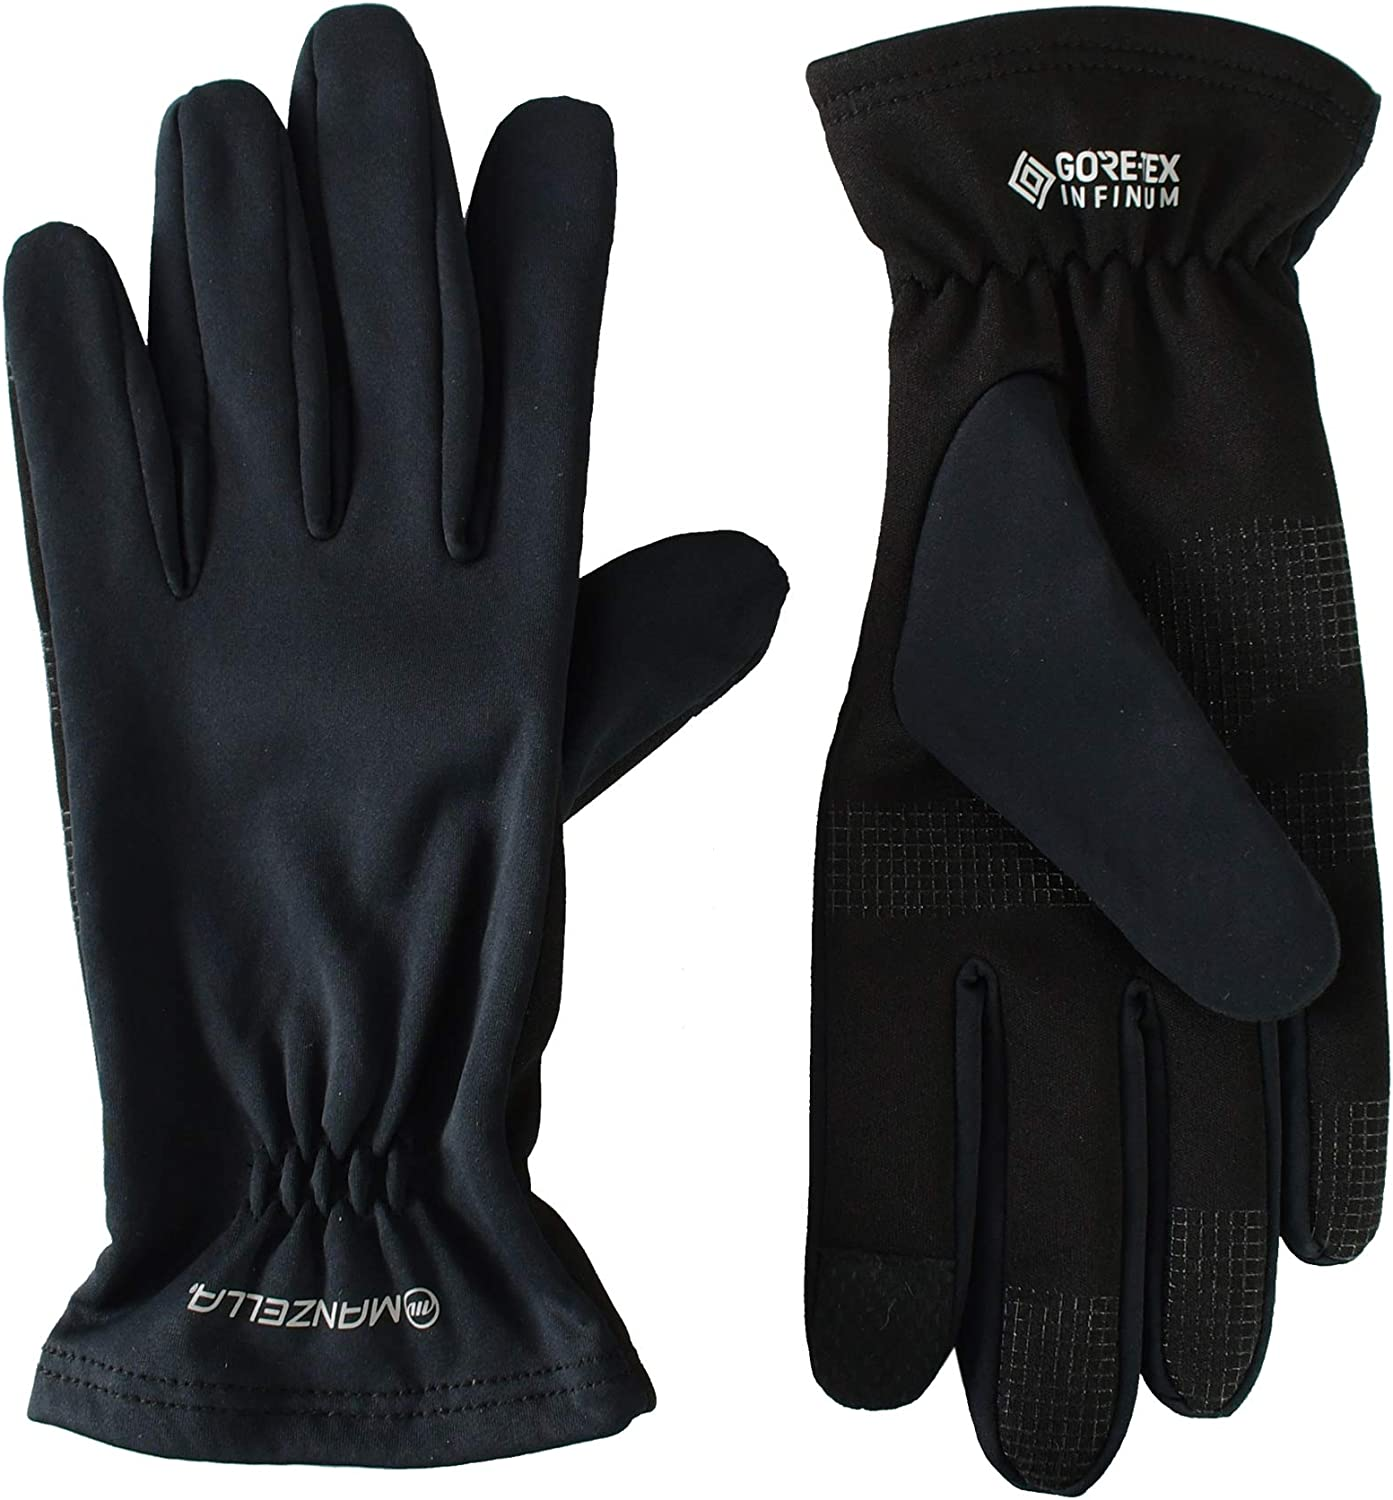 Manzella Men's Lightweight Gore-Tex Infinium Glove, Touchscreen Capable with Windproof Protection Against Cold Weather